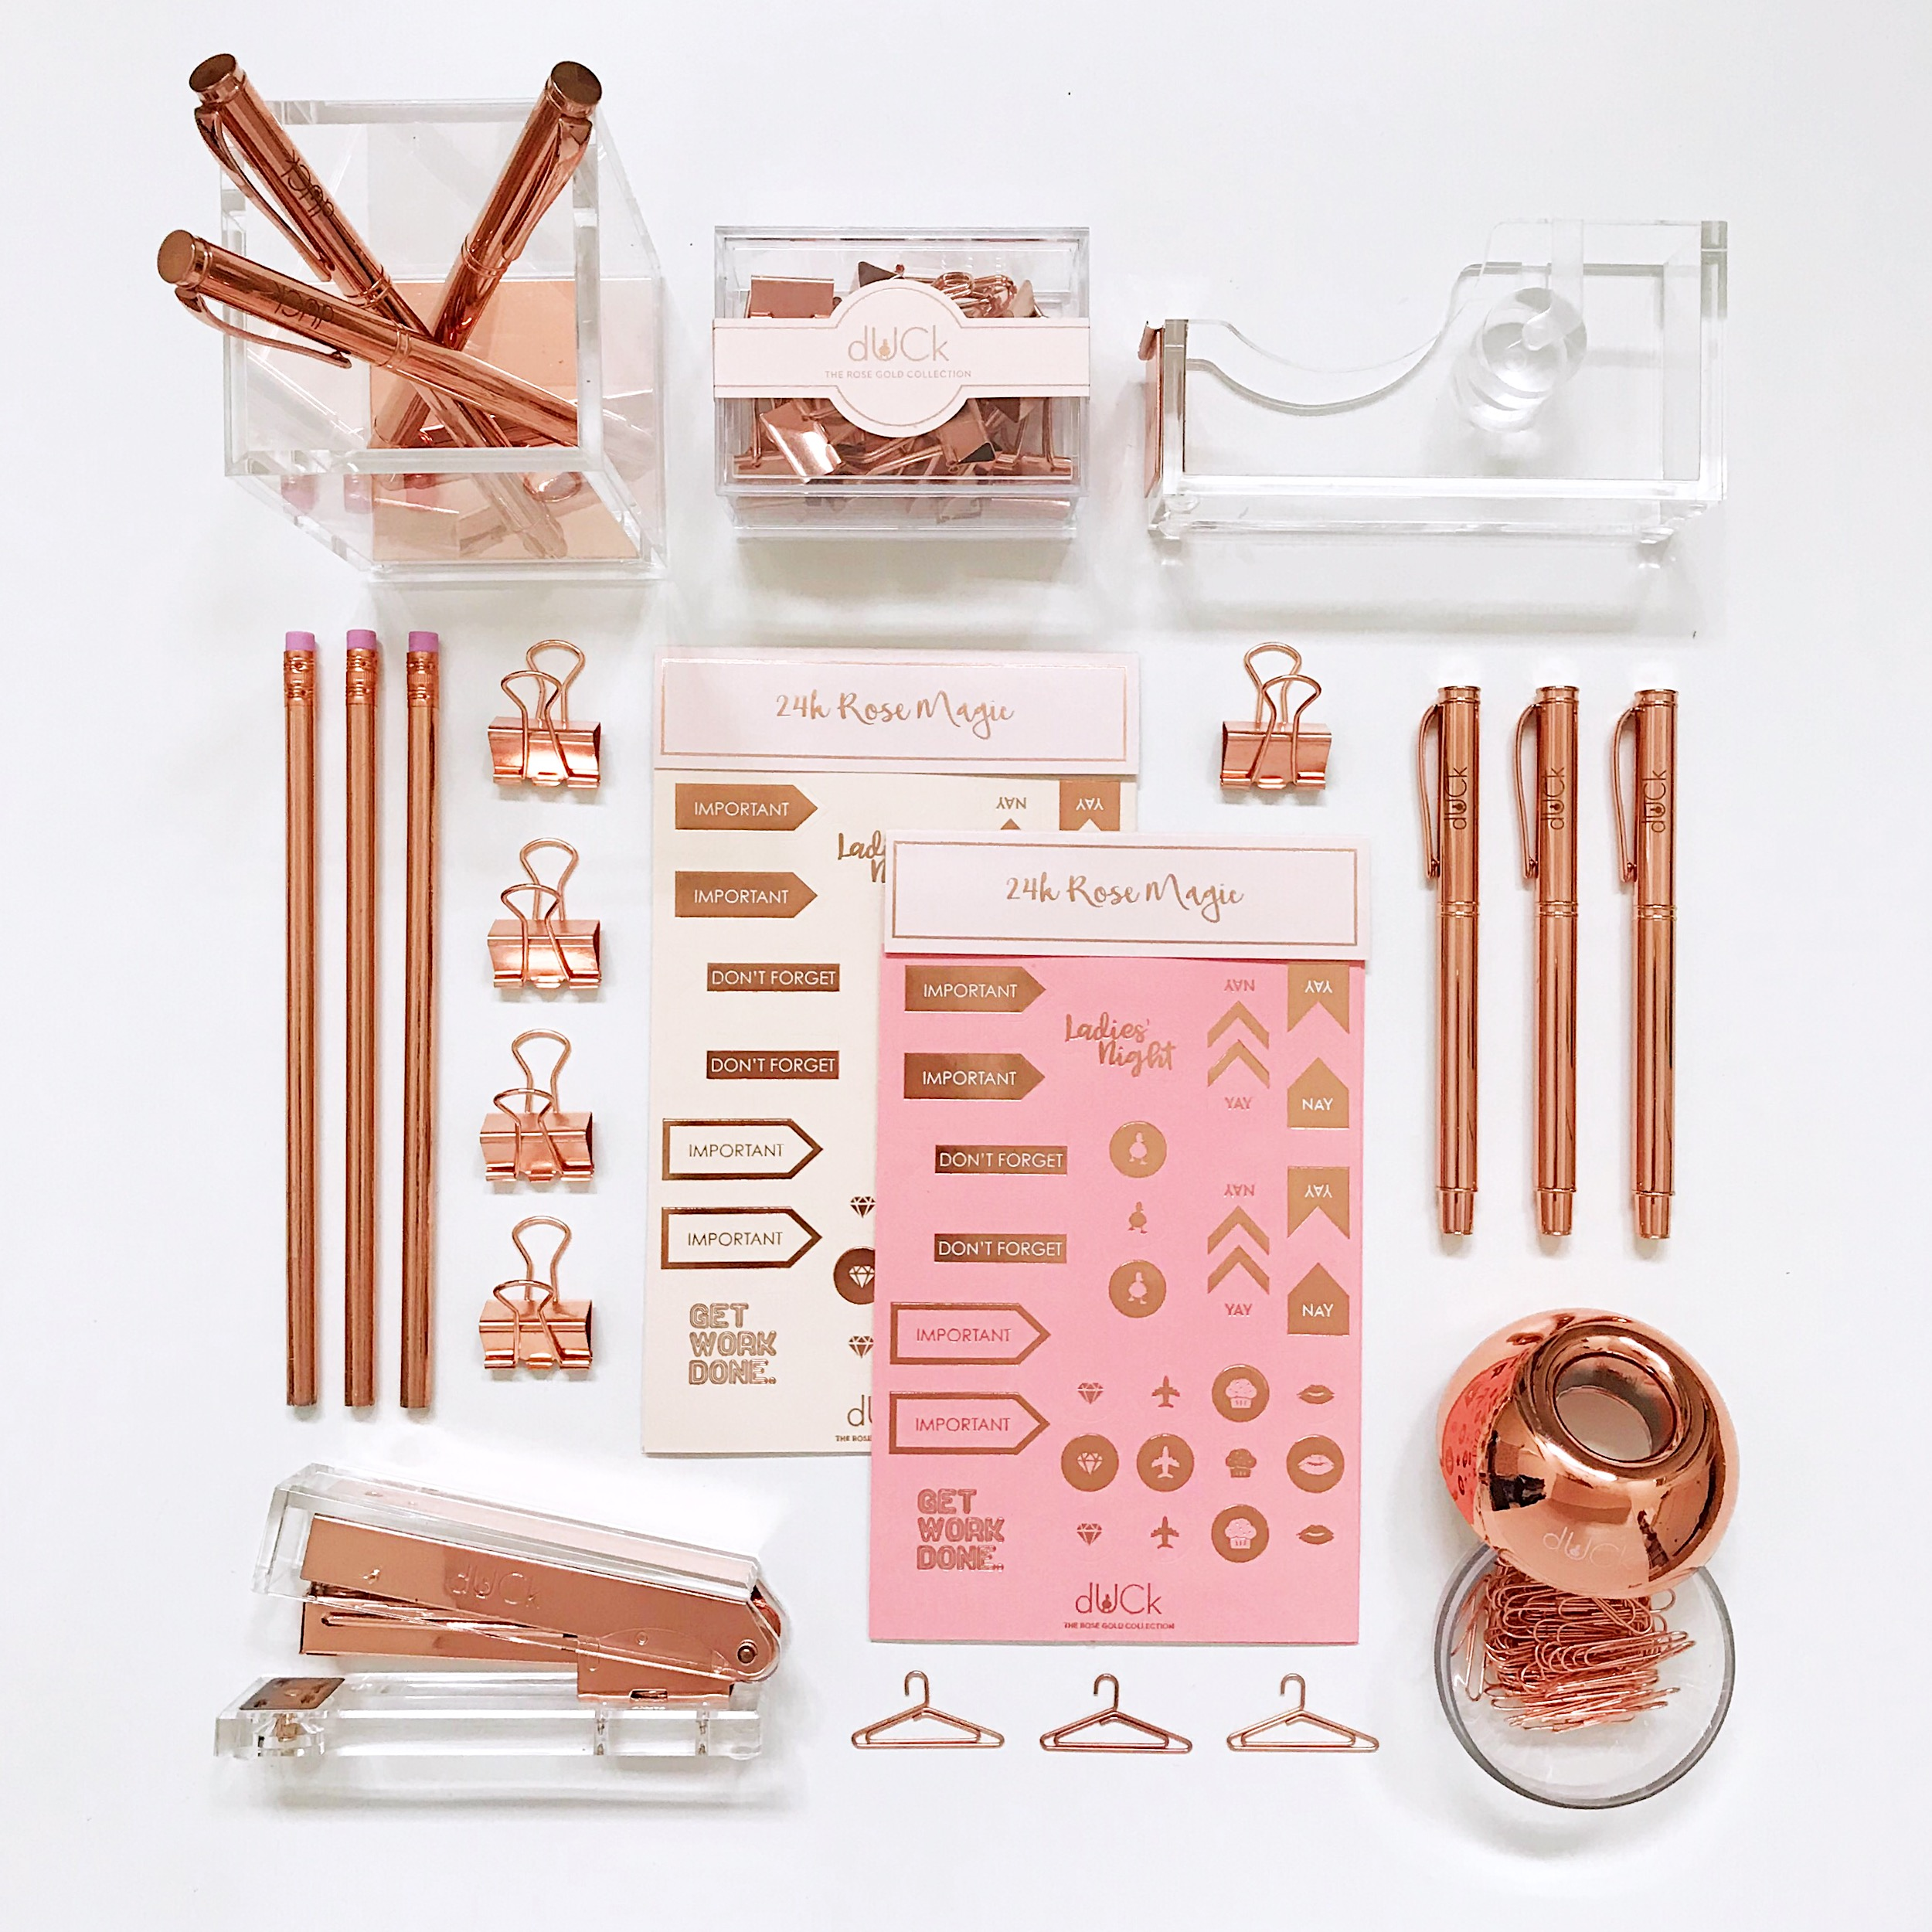 The chic rose gold stationery collection by dUCk.